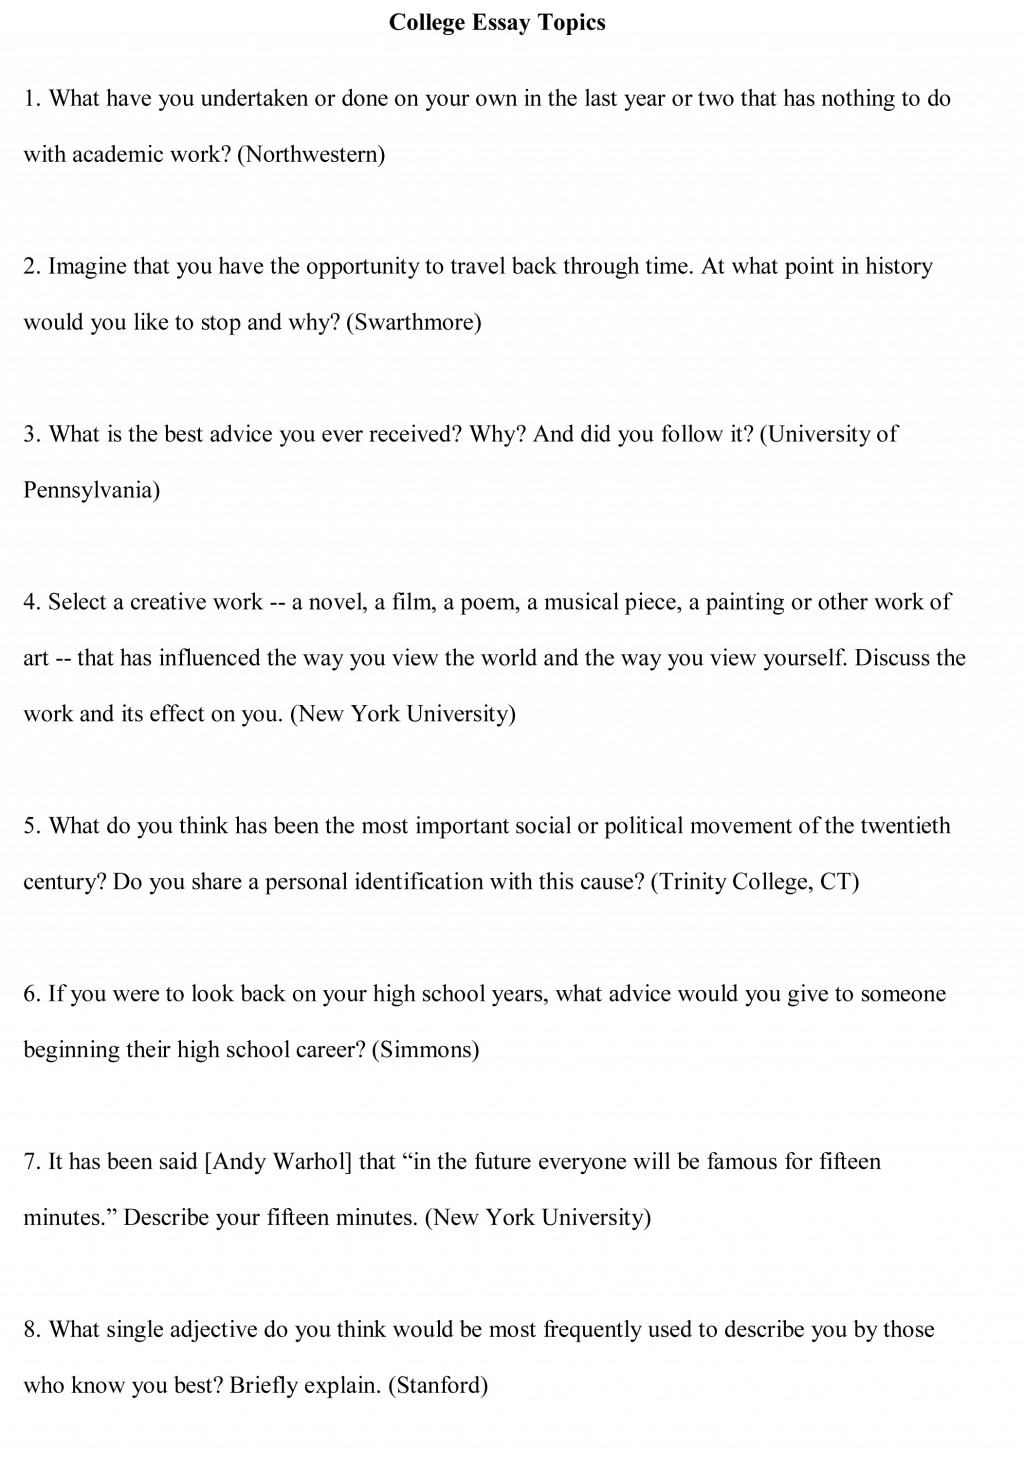 009 Immigration Research Paper Topics College Essay Free Stunning Law Illegal Large